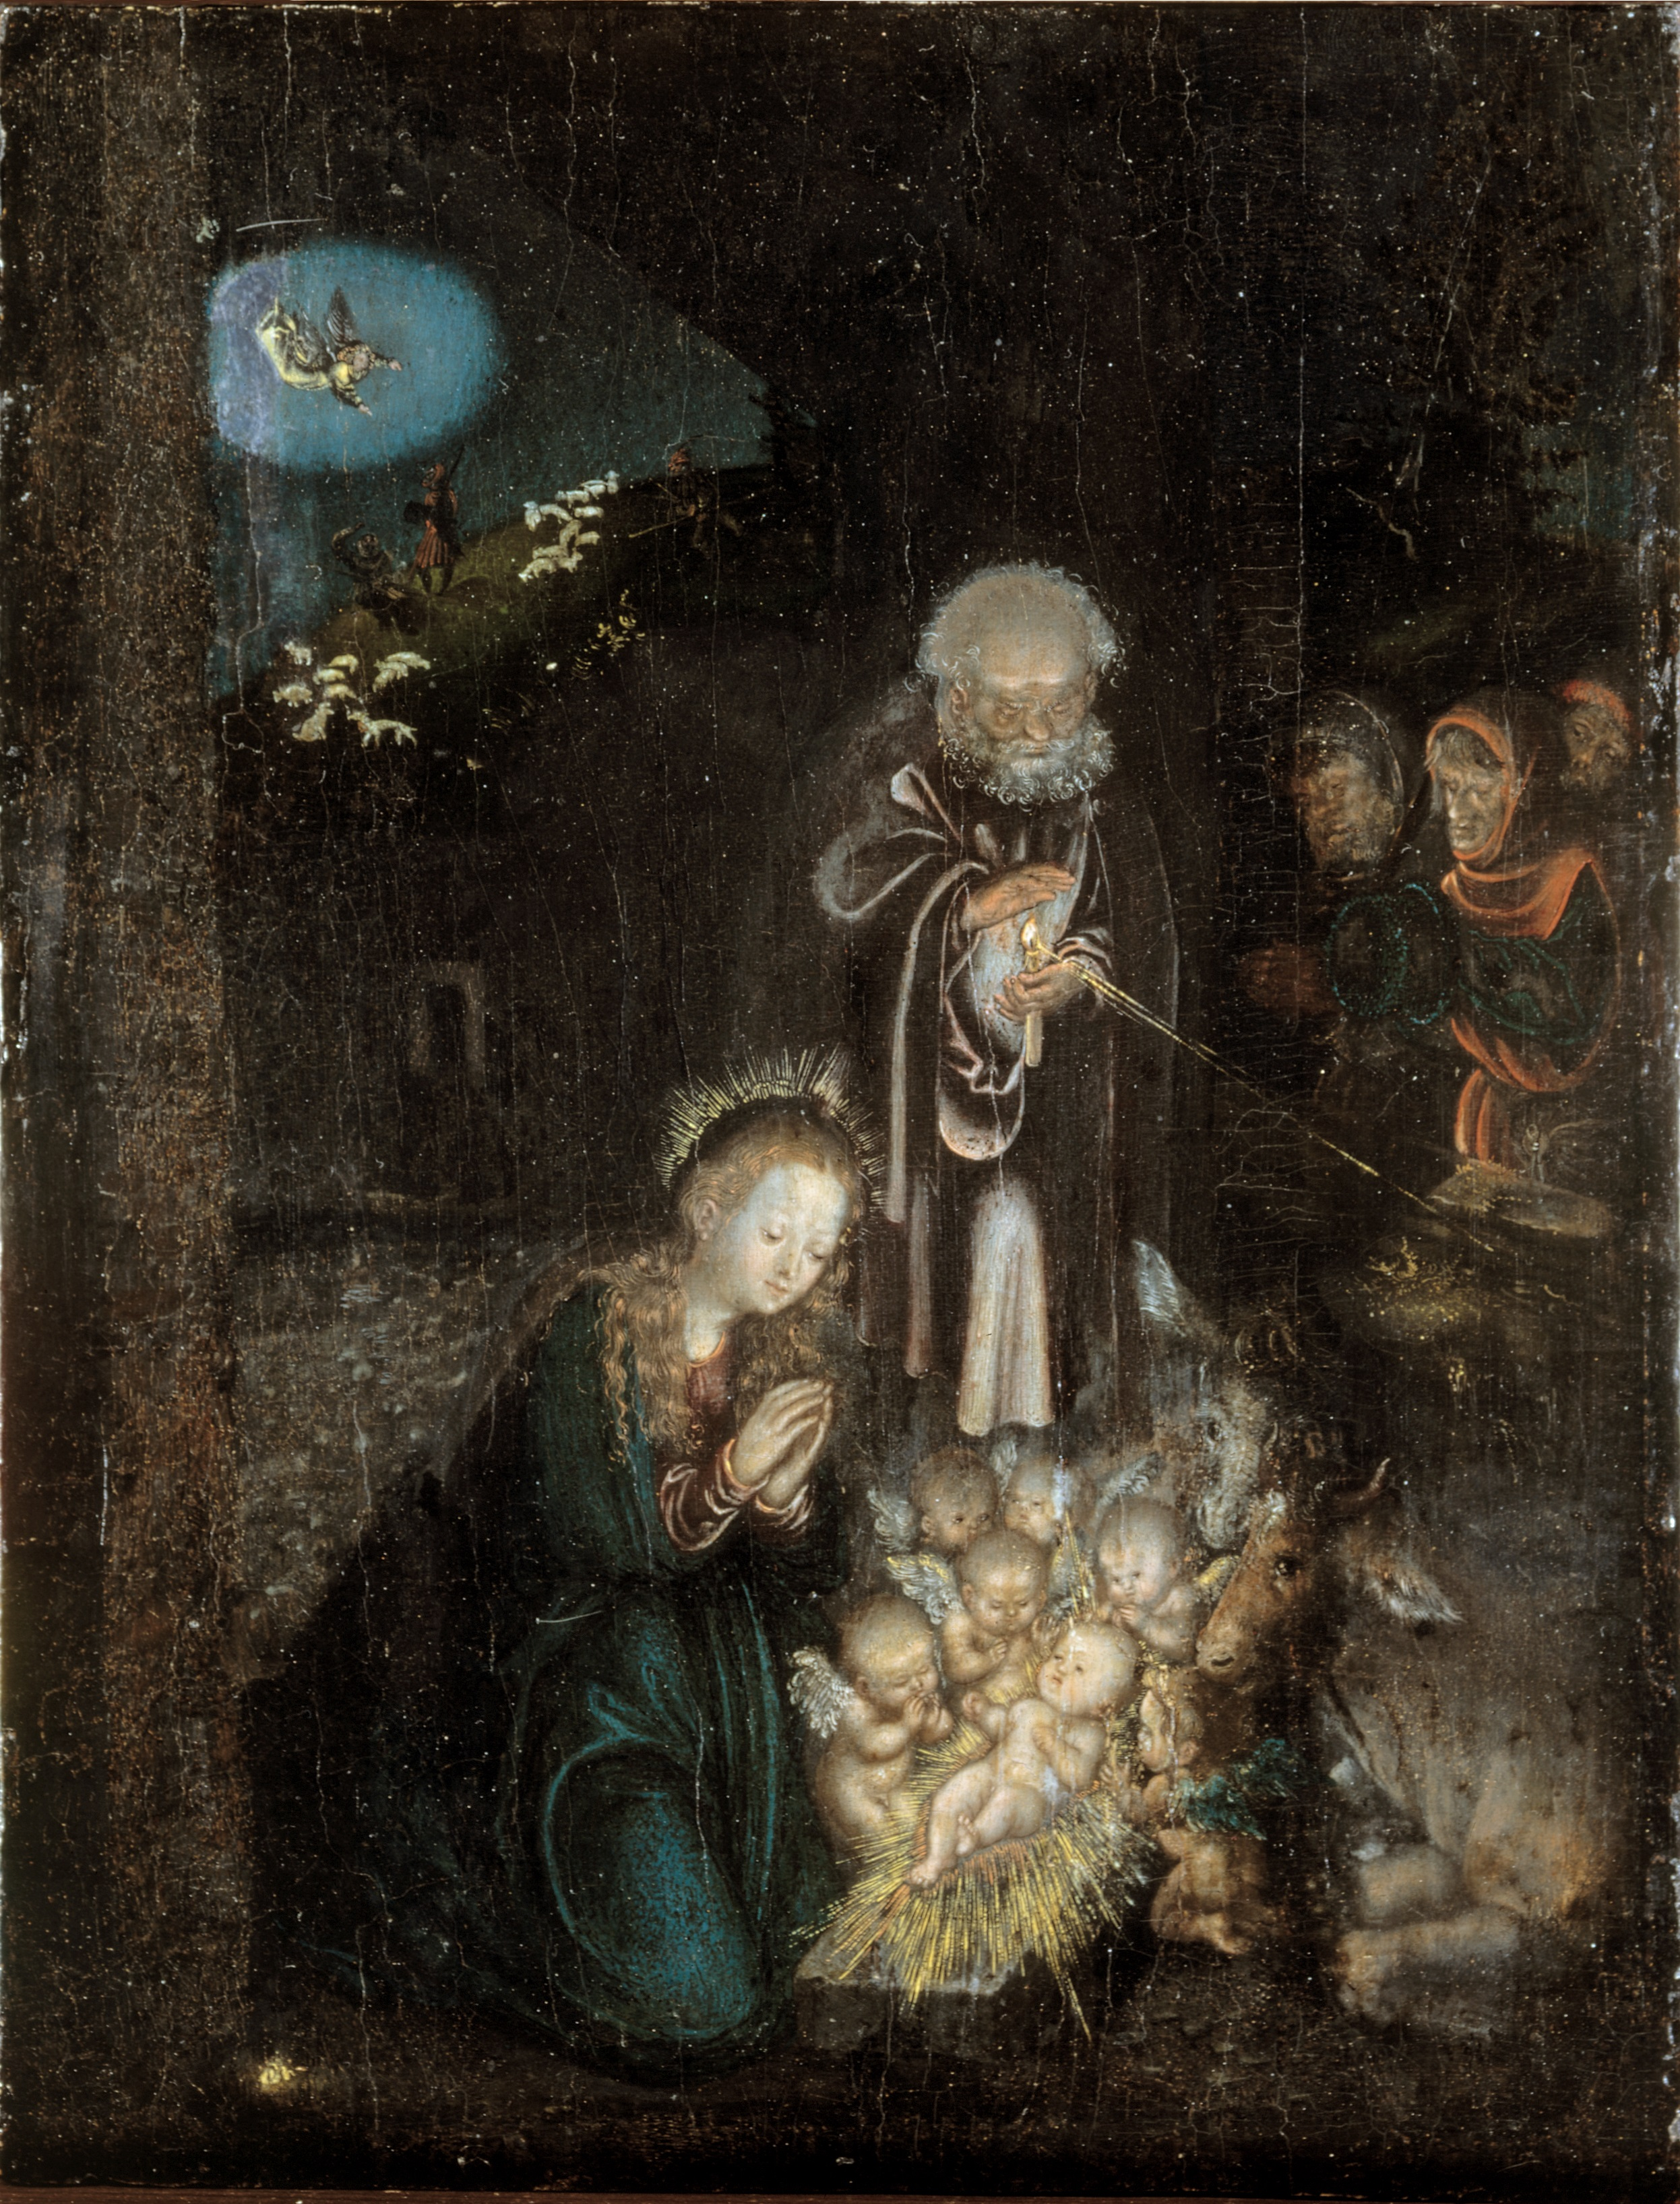 Kaledos. The Adoration of the Shepherds (Anbetung der Hirten) c. 1515–1520 Lucas Cranach the Elder